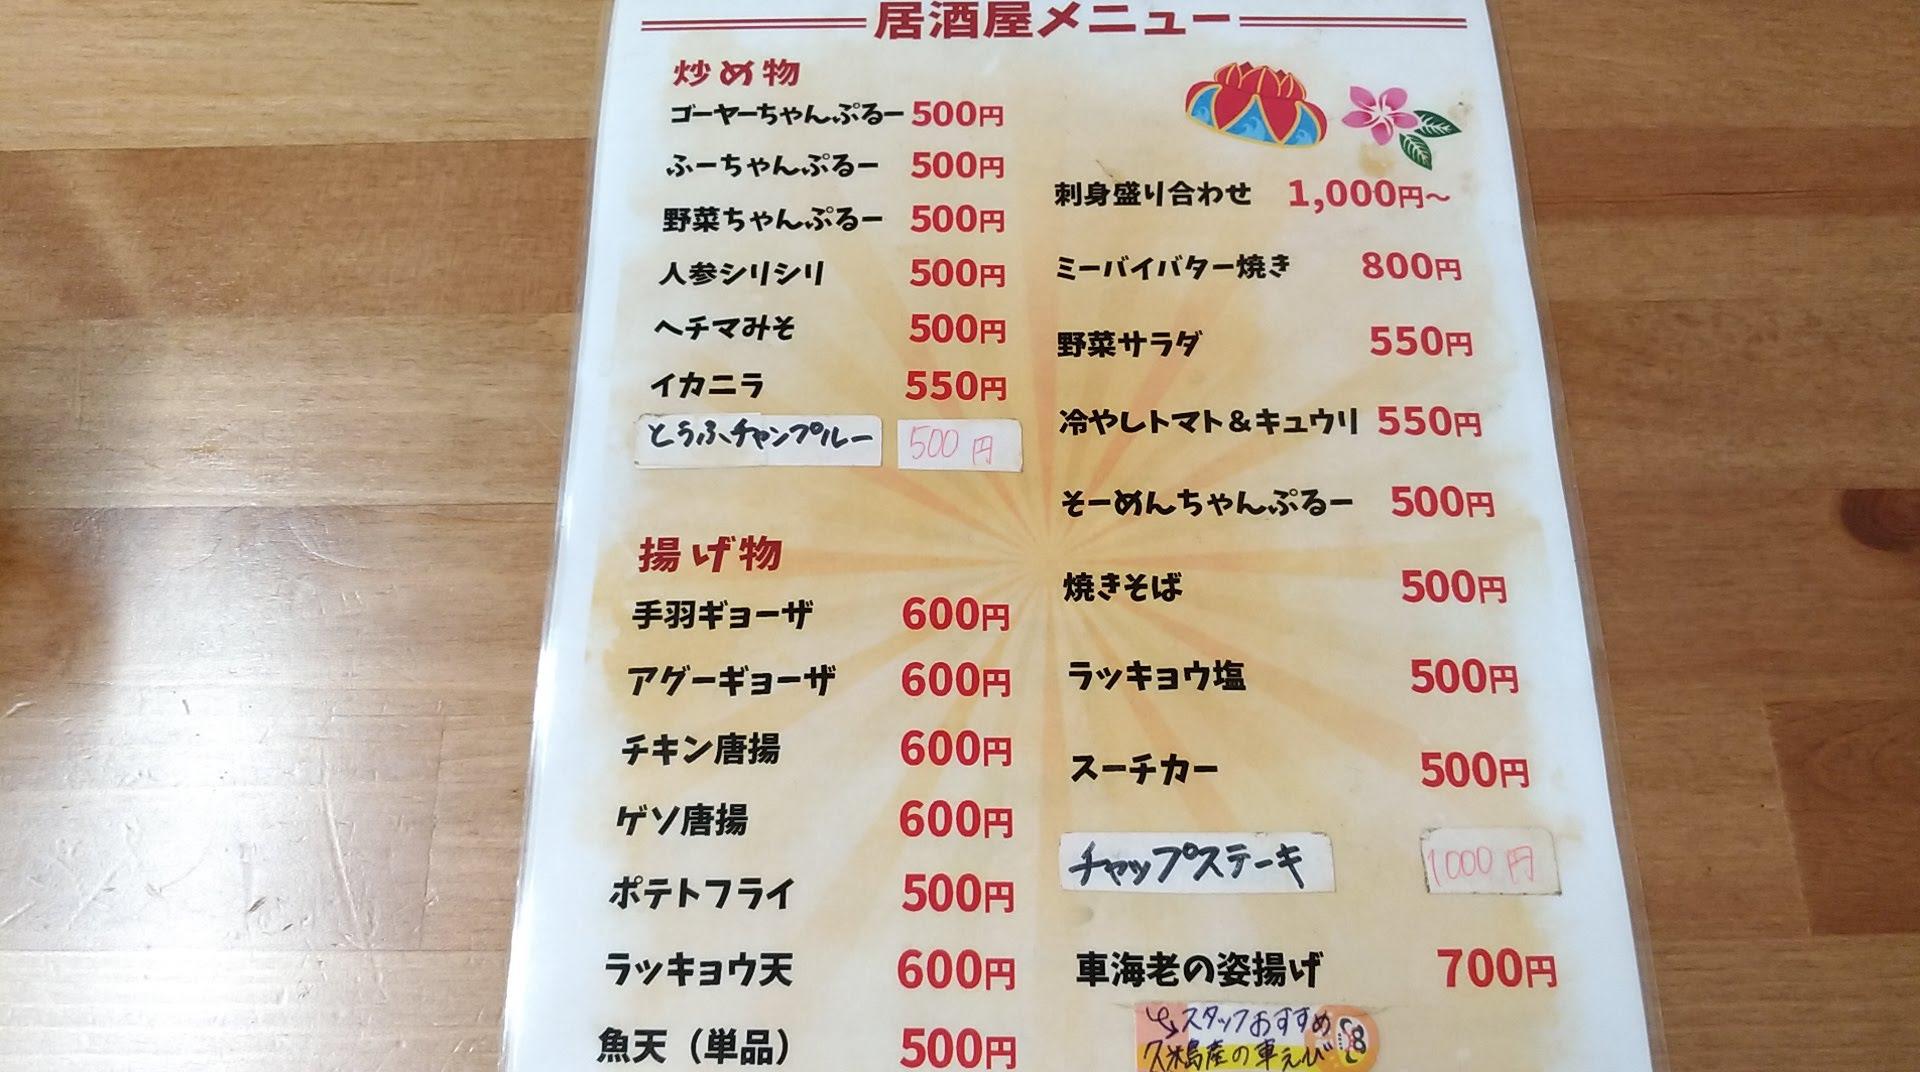 food menu of Shintenchi